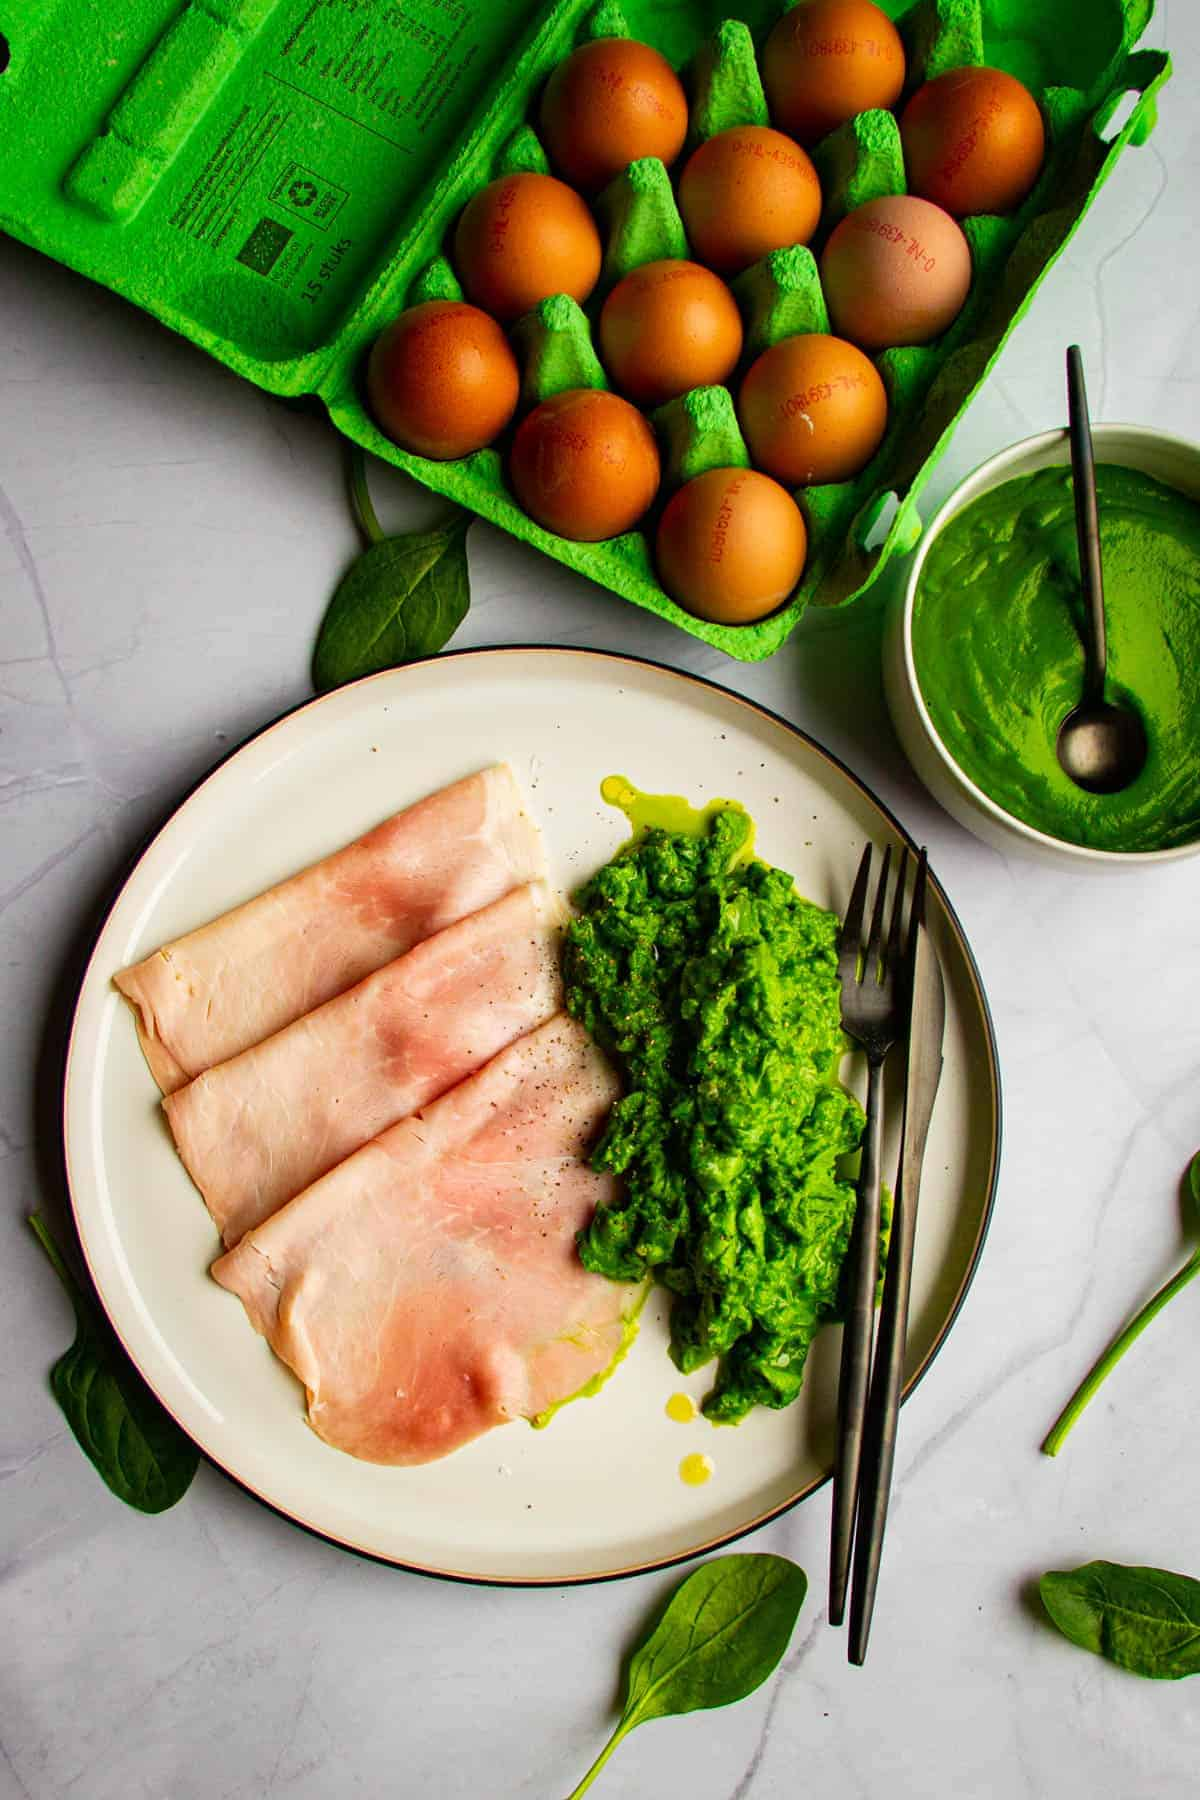 A recipe for green eggs and ham